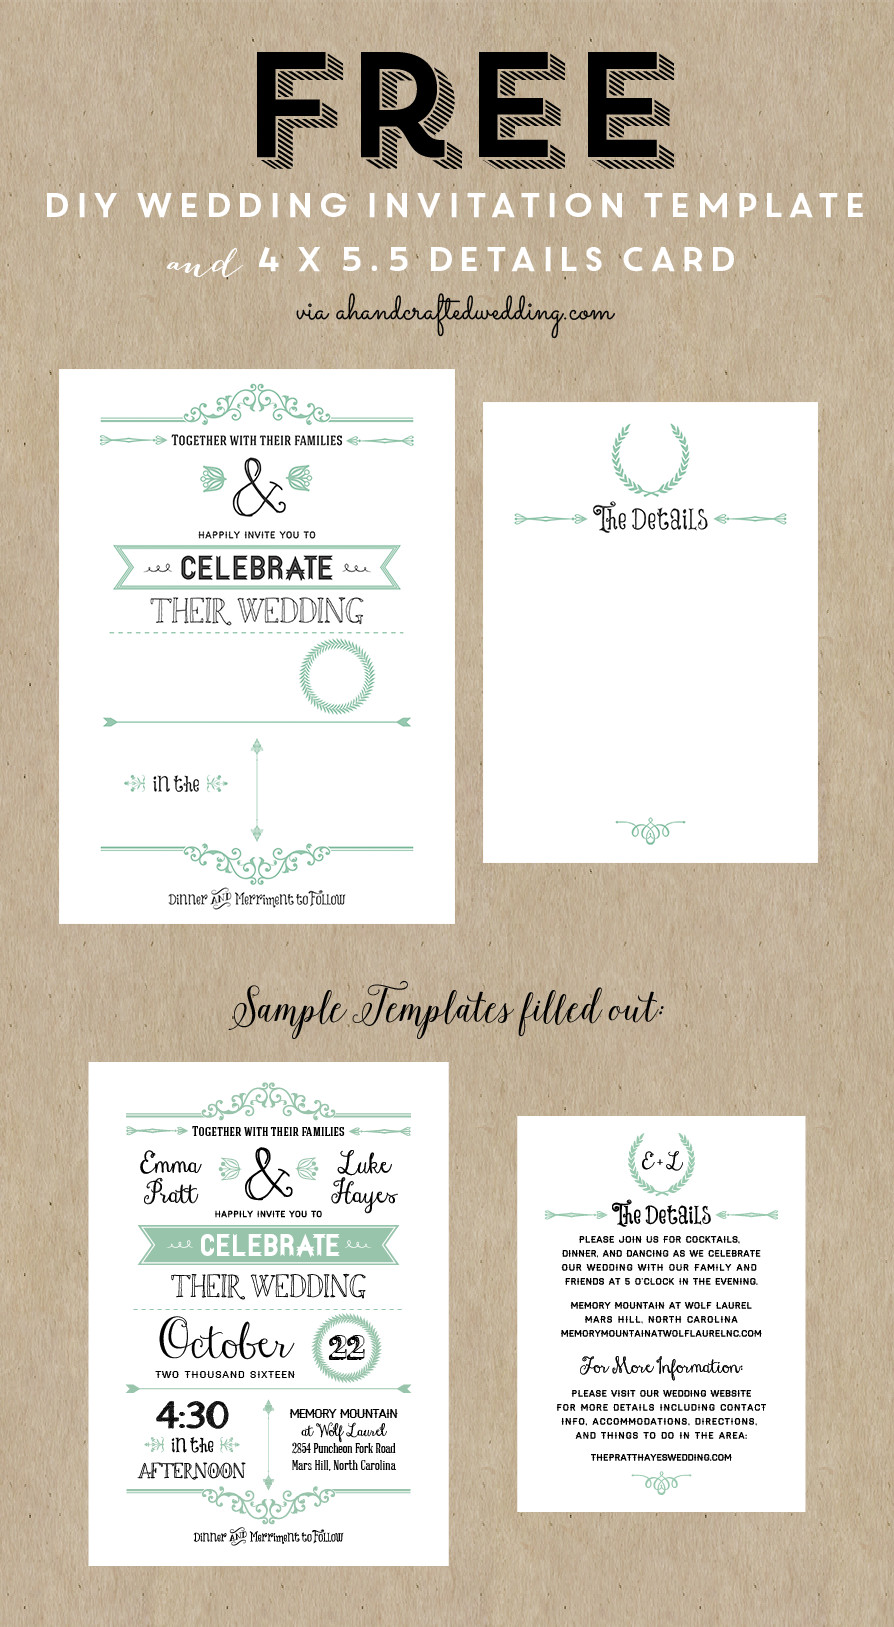 Free Download Invite Templates Best 25 Free Wedding Invitation Templates Ideas On